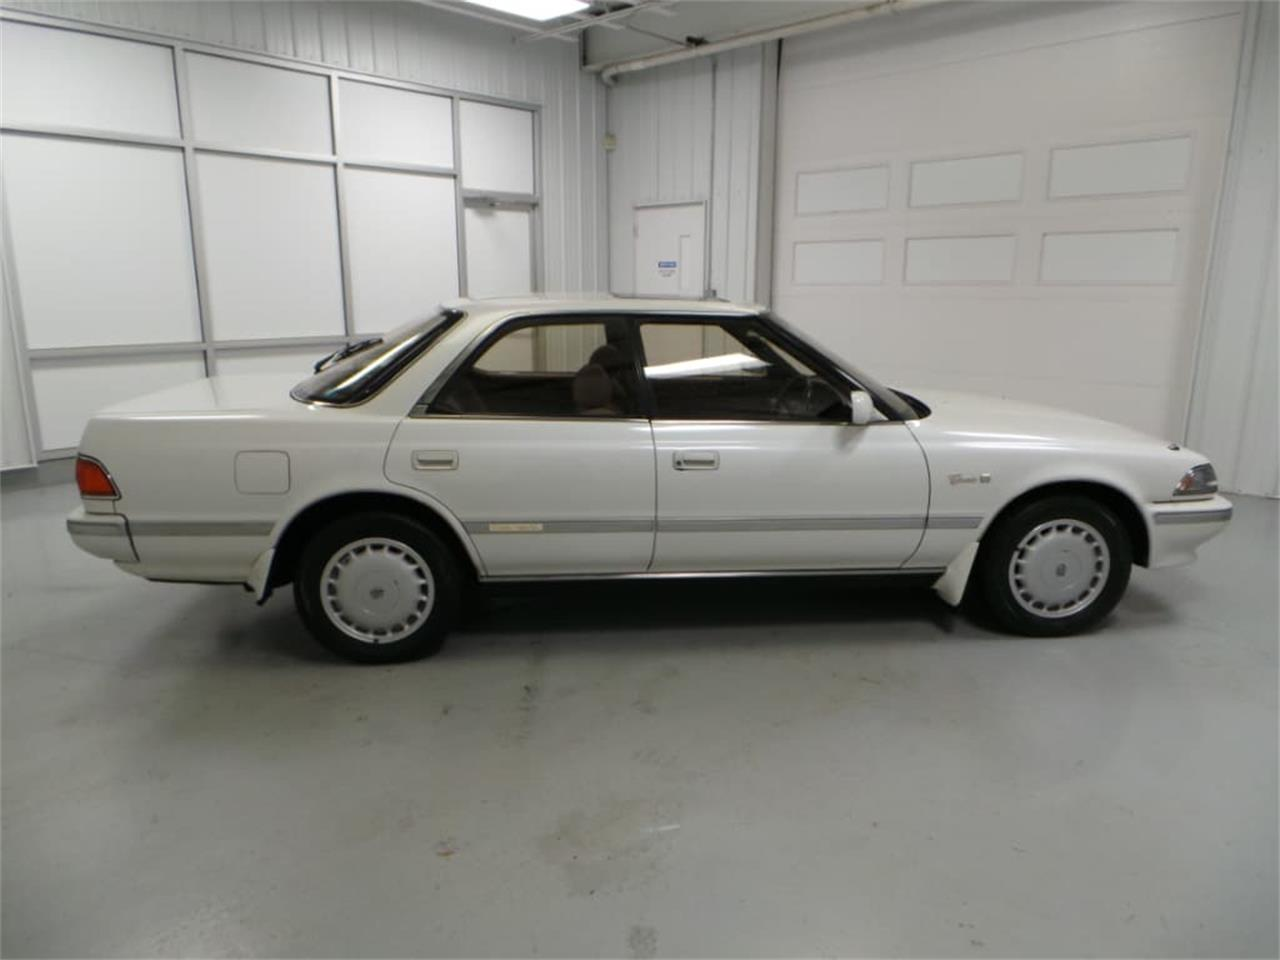 Large Picture of '88 Toyota Corona Mark II located in Virginia - $7,900.00 Offered by Duncan Imports & Classic Cars - JLDS